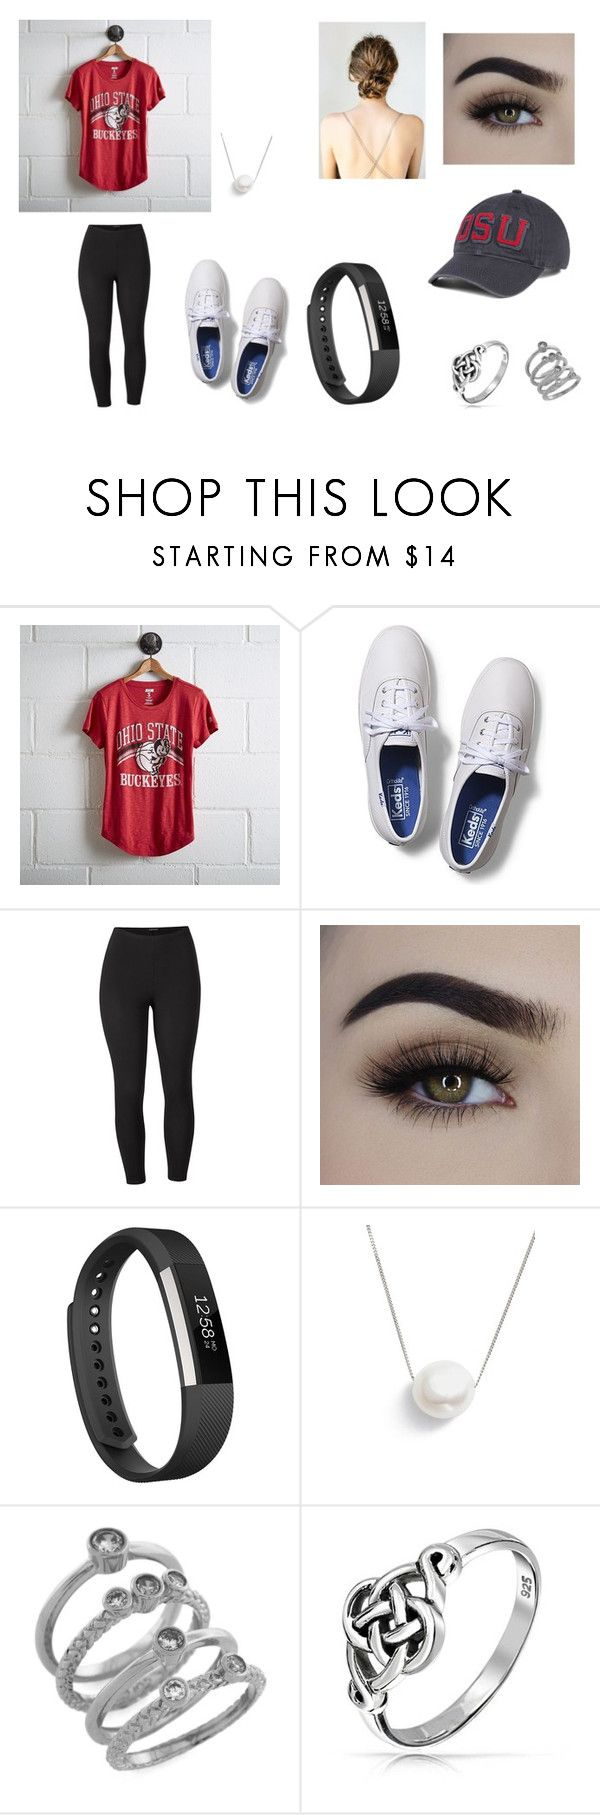 """""""First Ohio State game on Thursday!!"""" by sarapotter98 on Polyvore featuring Tailgate, Keds, Venus, Fitbit, Chan Luu, Cole Haan, Bling Jewelry, J. America and plus size clothing"""